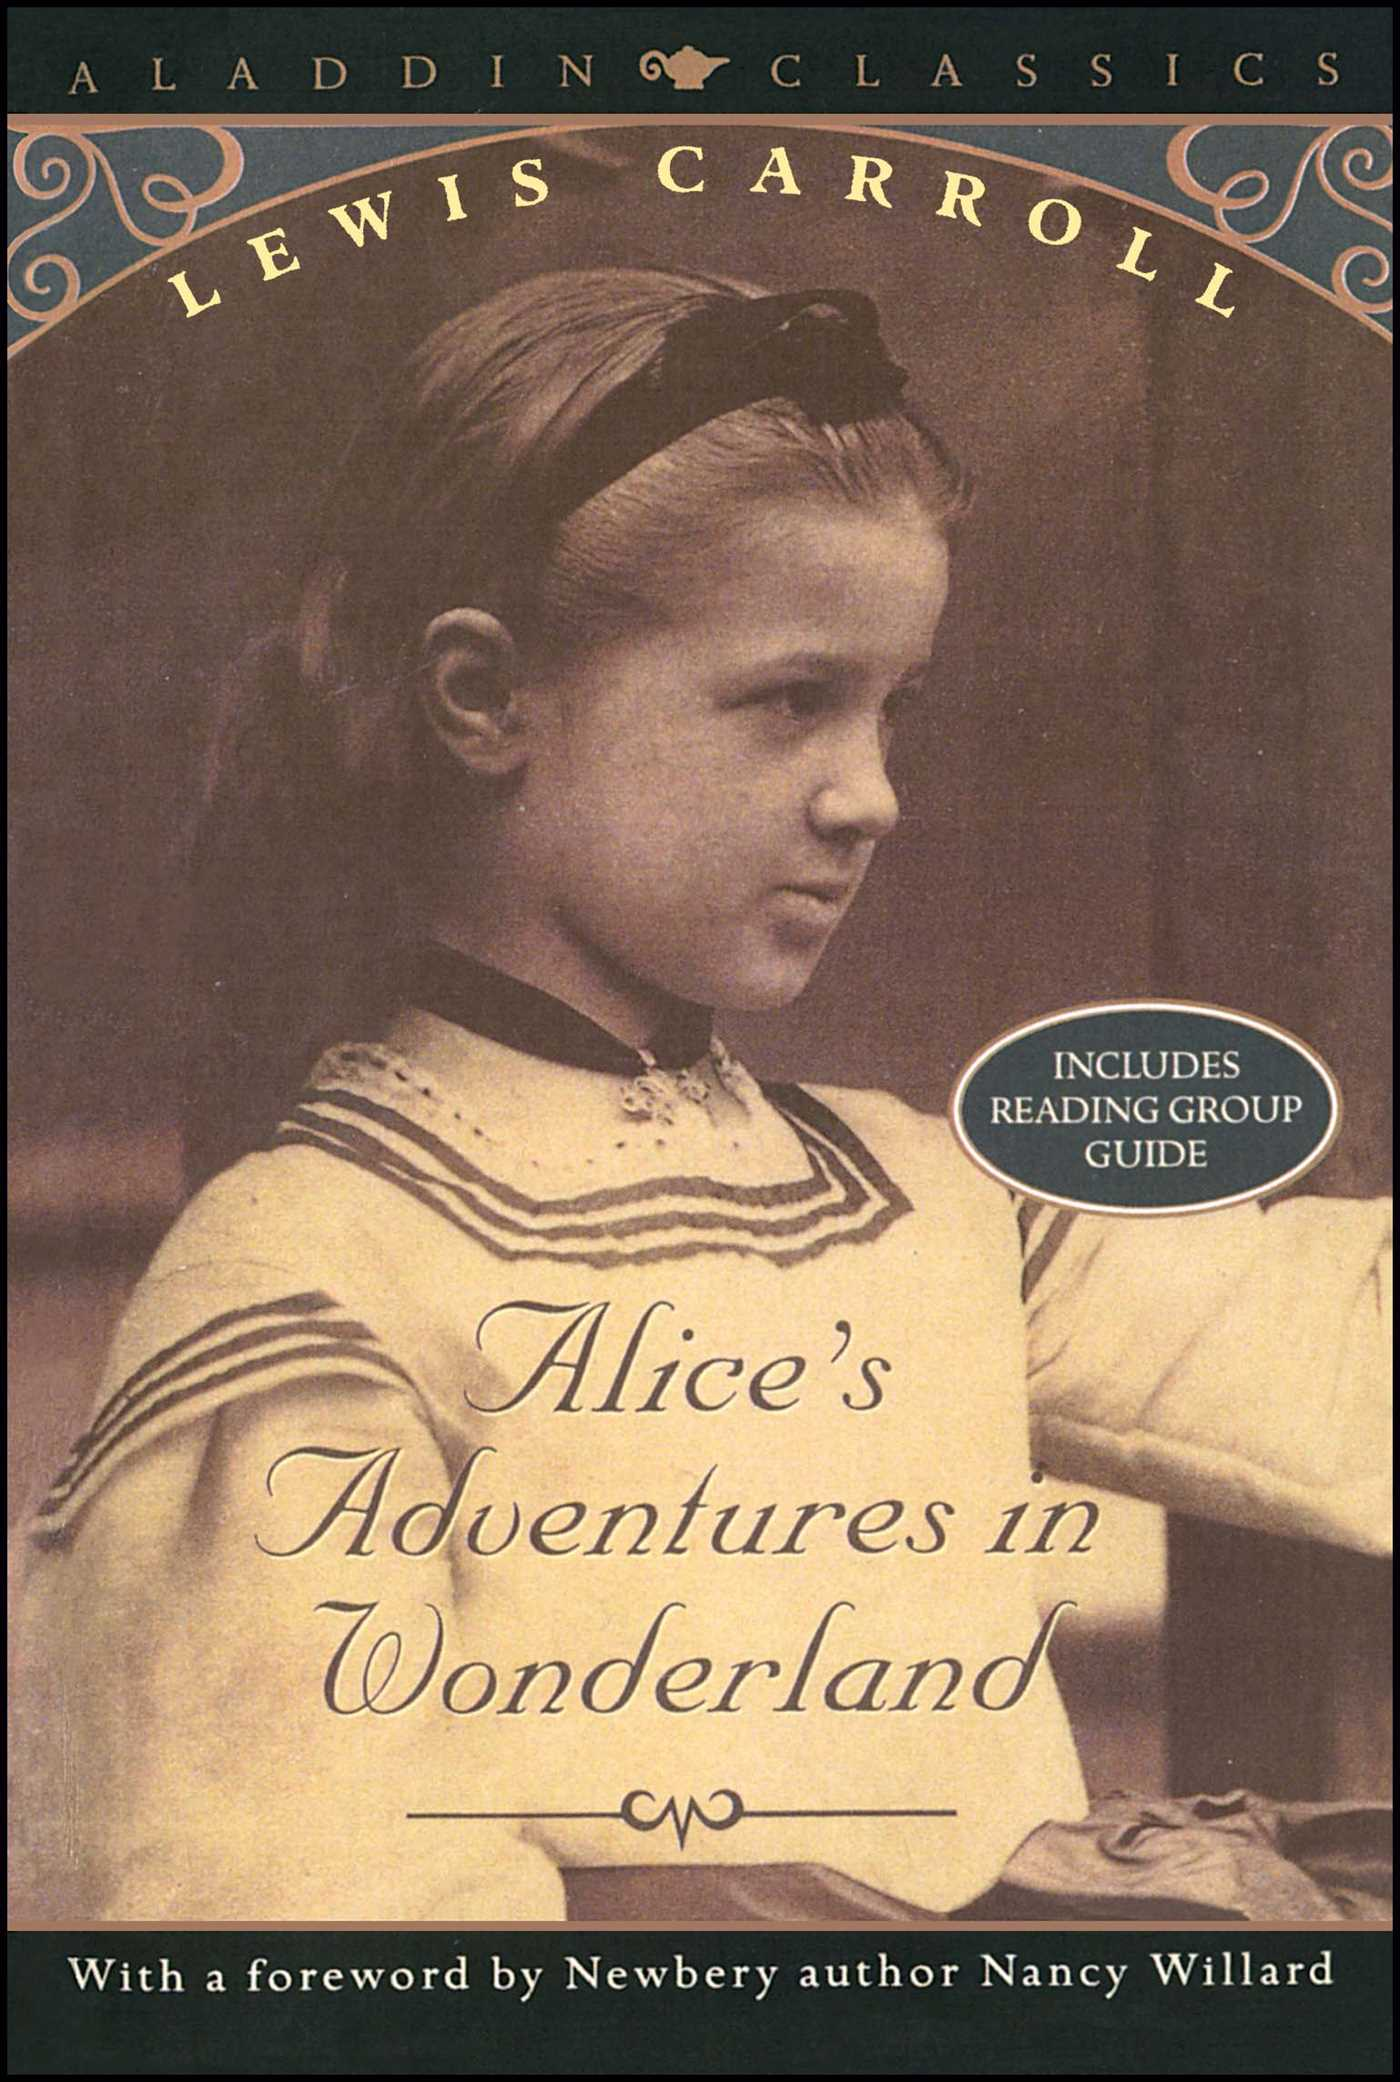 alices adventures in wonderland book report Great ideas for essays, reports, and school projects on alice's adventures in wonderland by lewis carroll part of a comprehensive study guide from bookragscom.